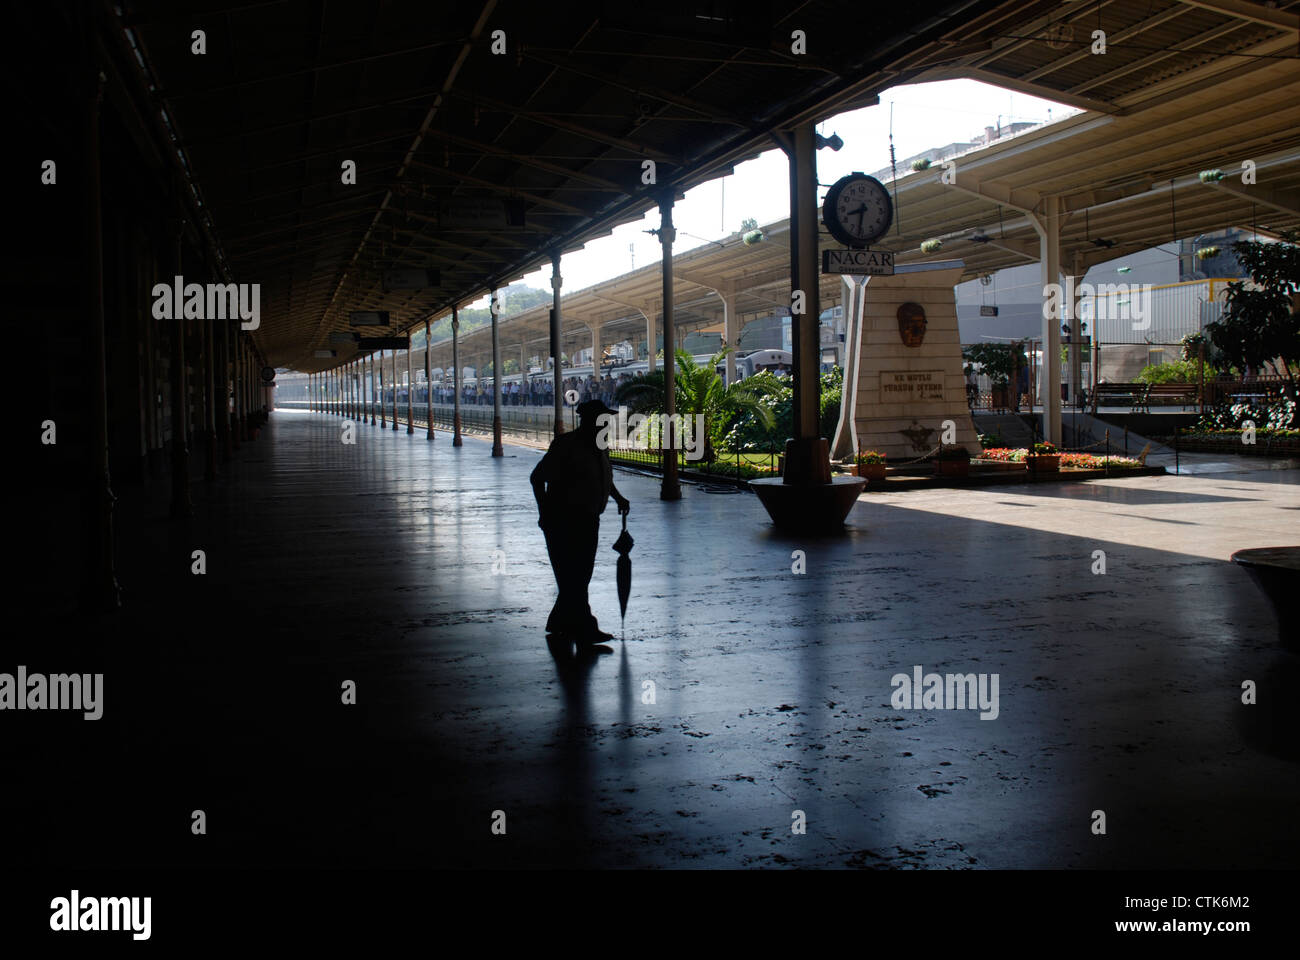 An old man with an umbrella walks through Sirkeci railway station in Istanbul. Picture by: Adam Alexander/Alamy - Stock Image